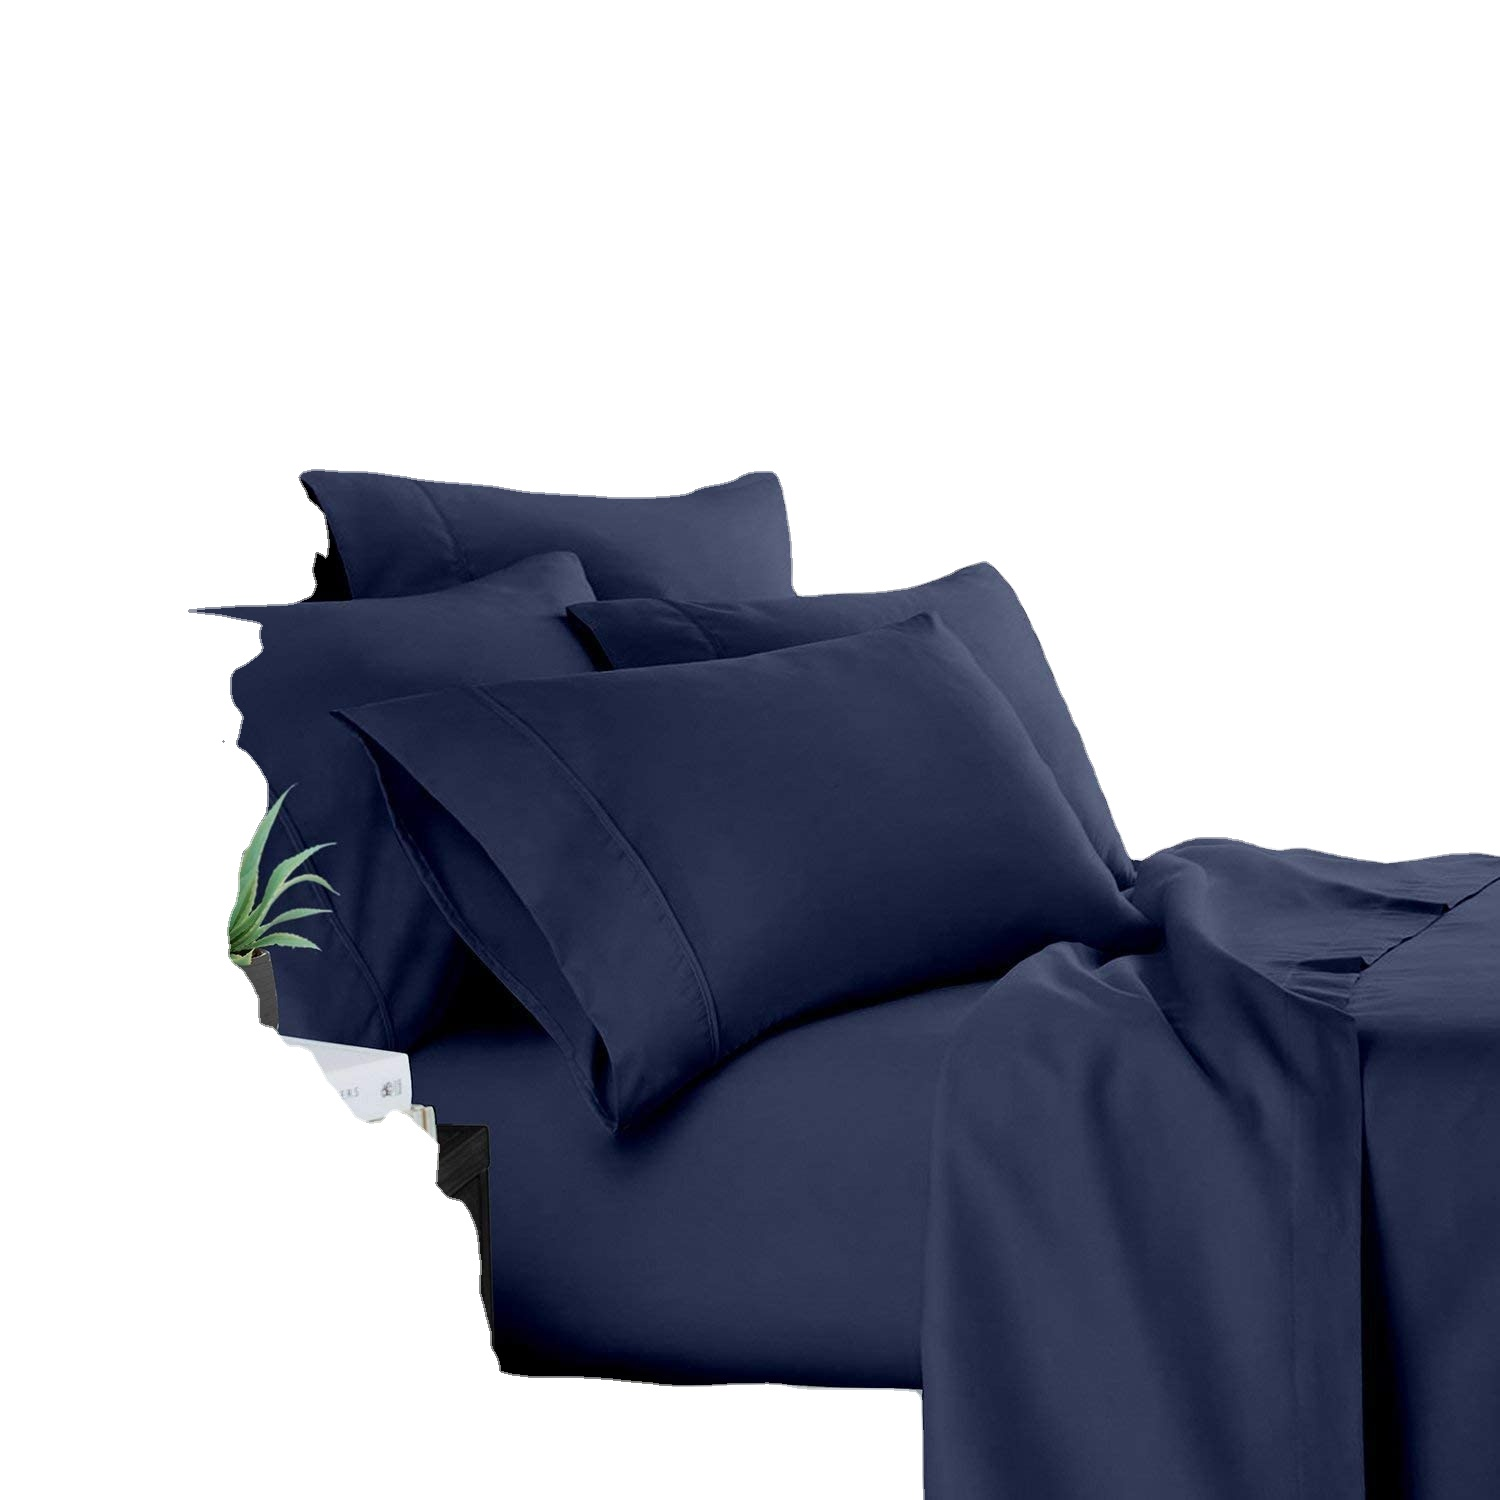 Beautiful Home Textile Buy Online Bed Sheets on Sale Polyester Comfortable Satin Bedding <strong>Set</strong>